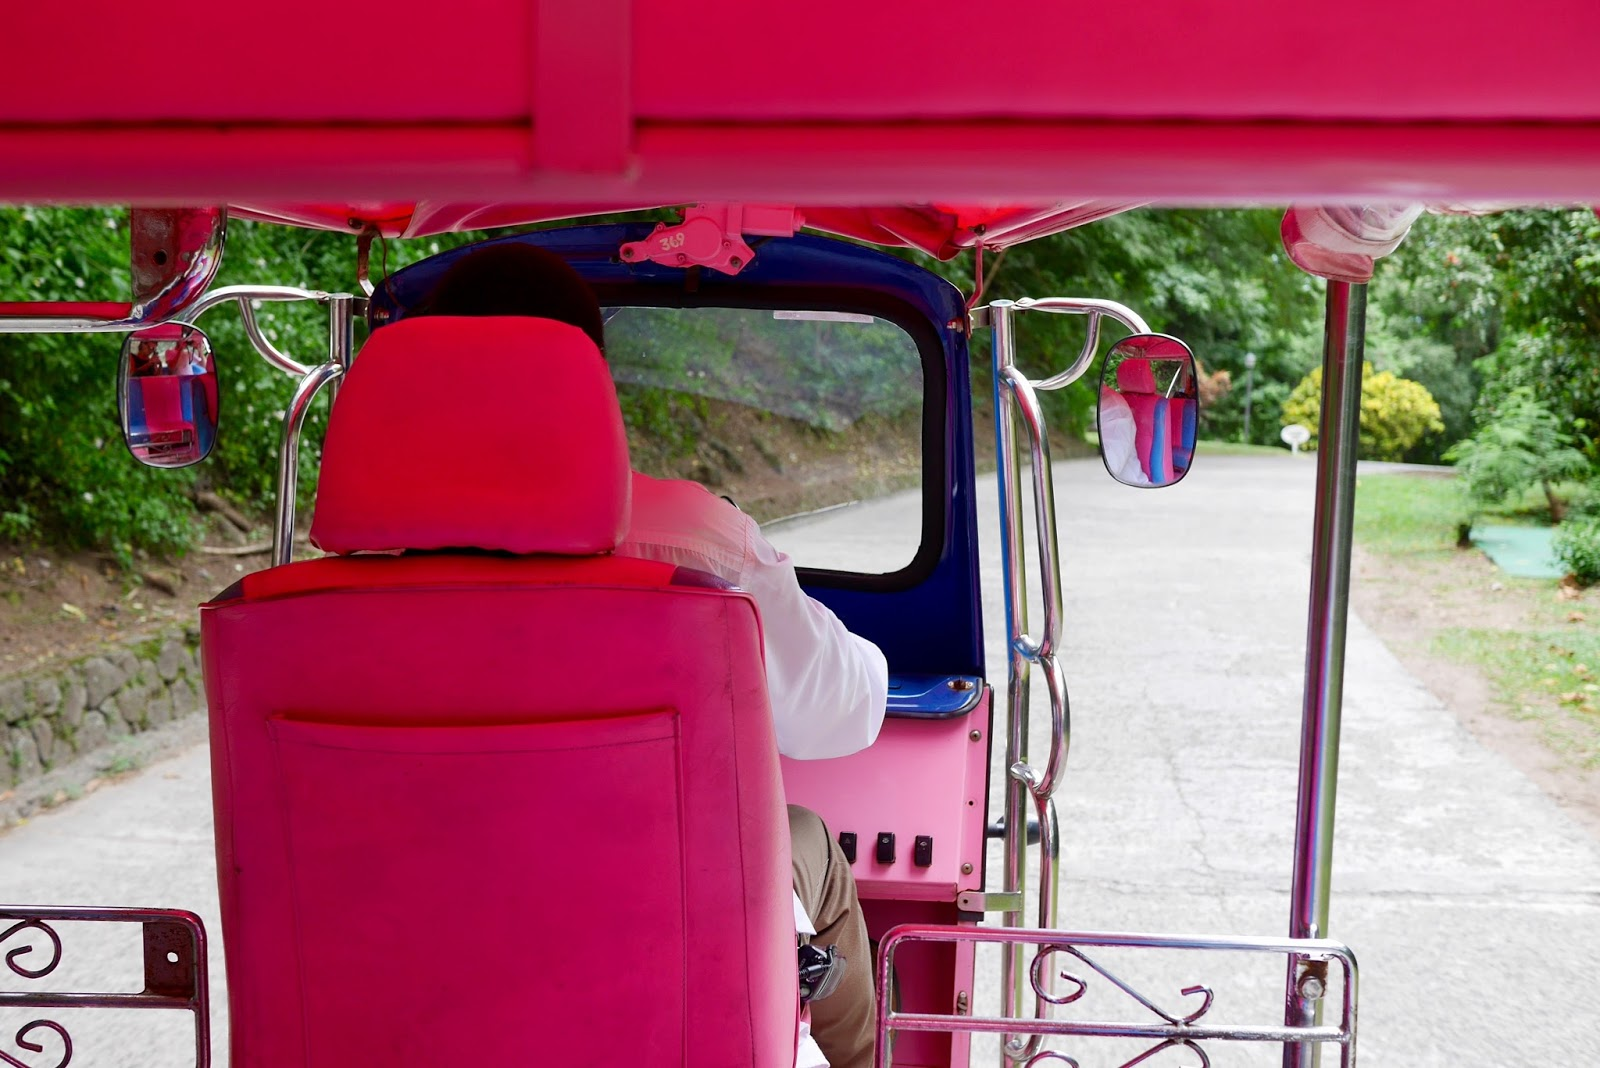 Pink golf cart, sugar beach, Soufrière, St Lucia by www.CalMcTravels.com